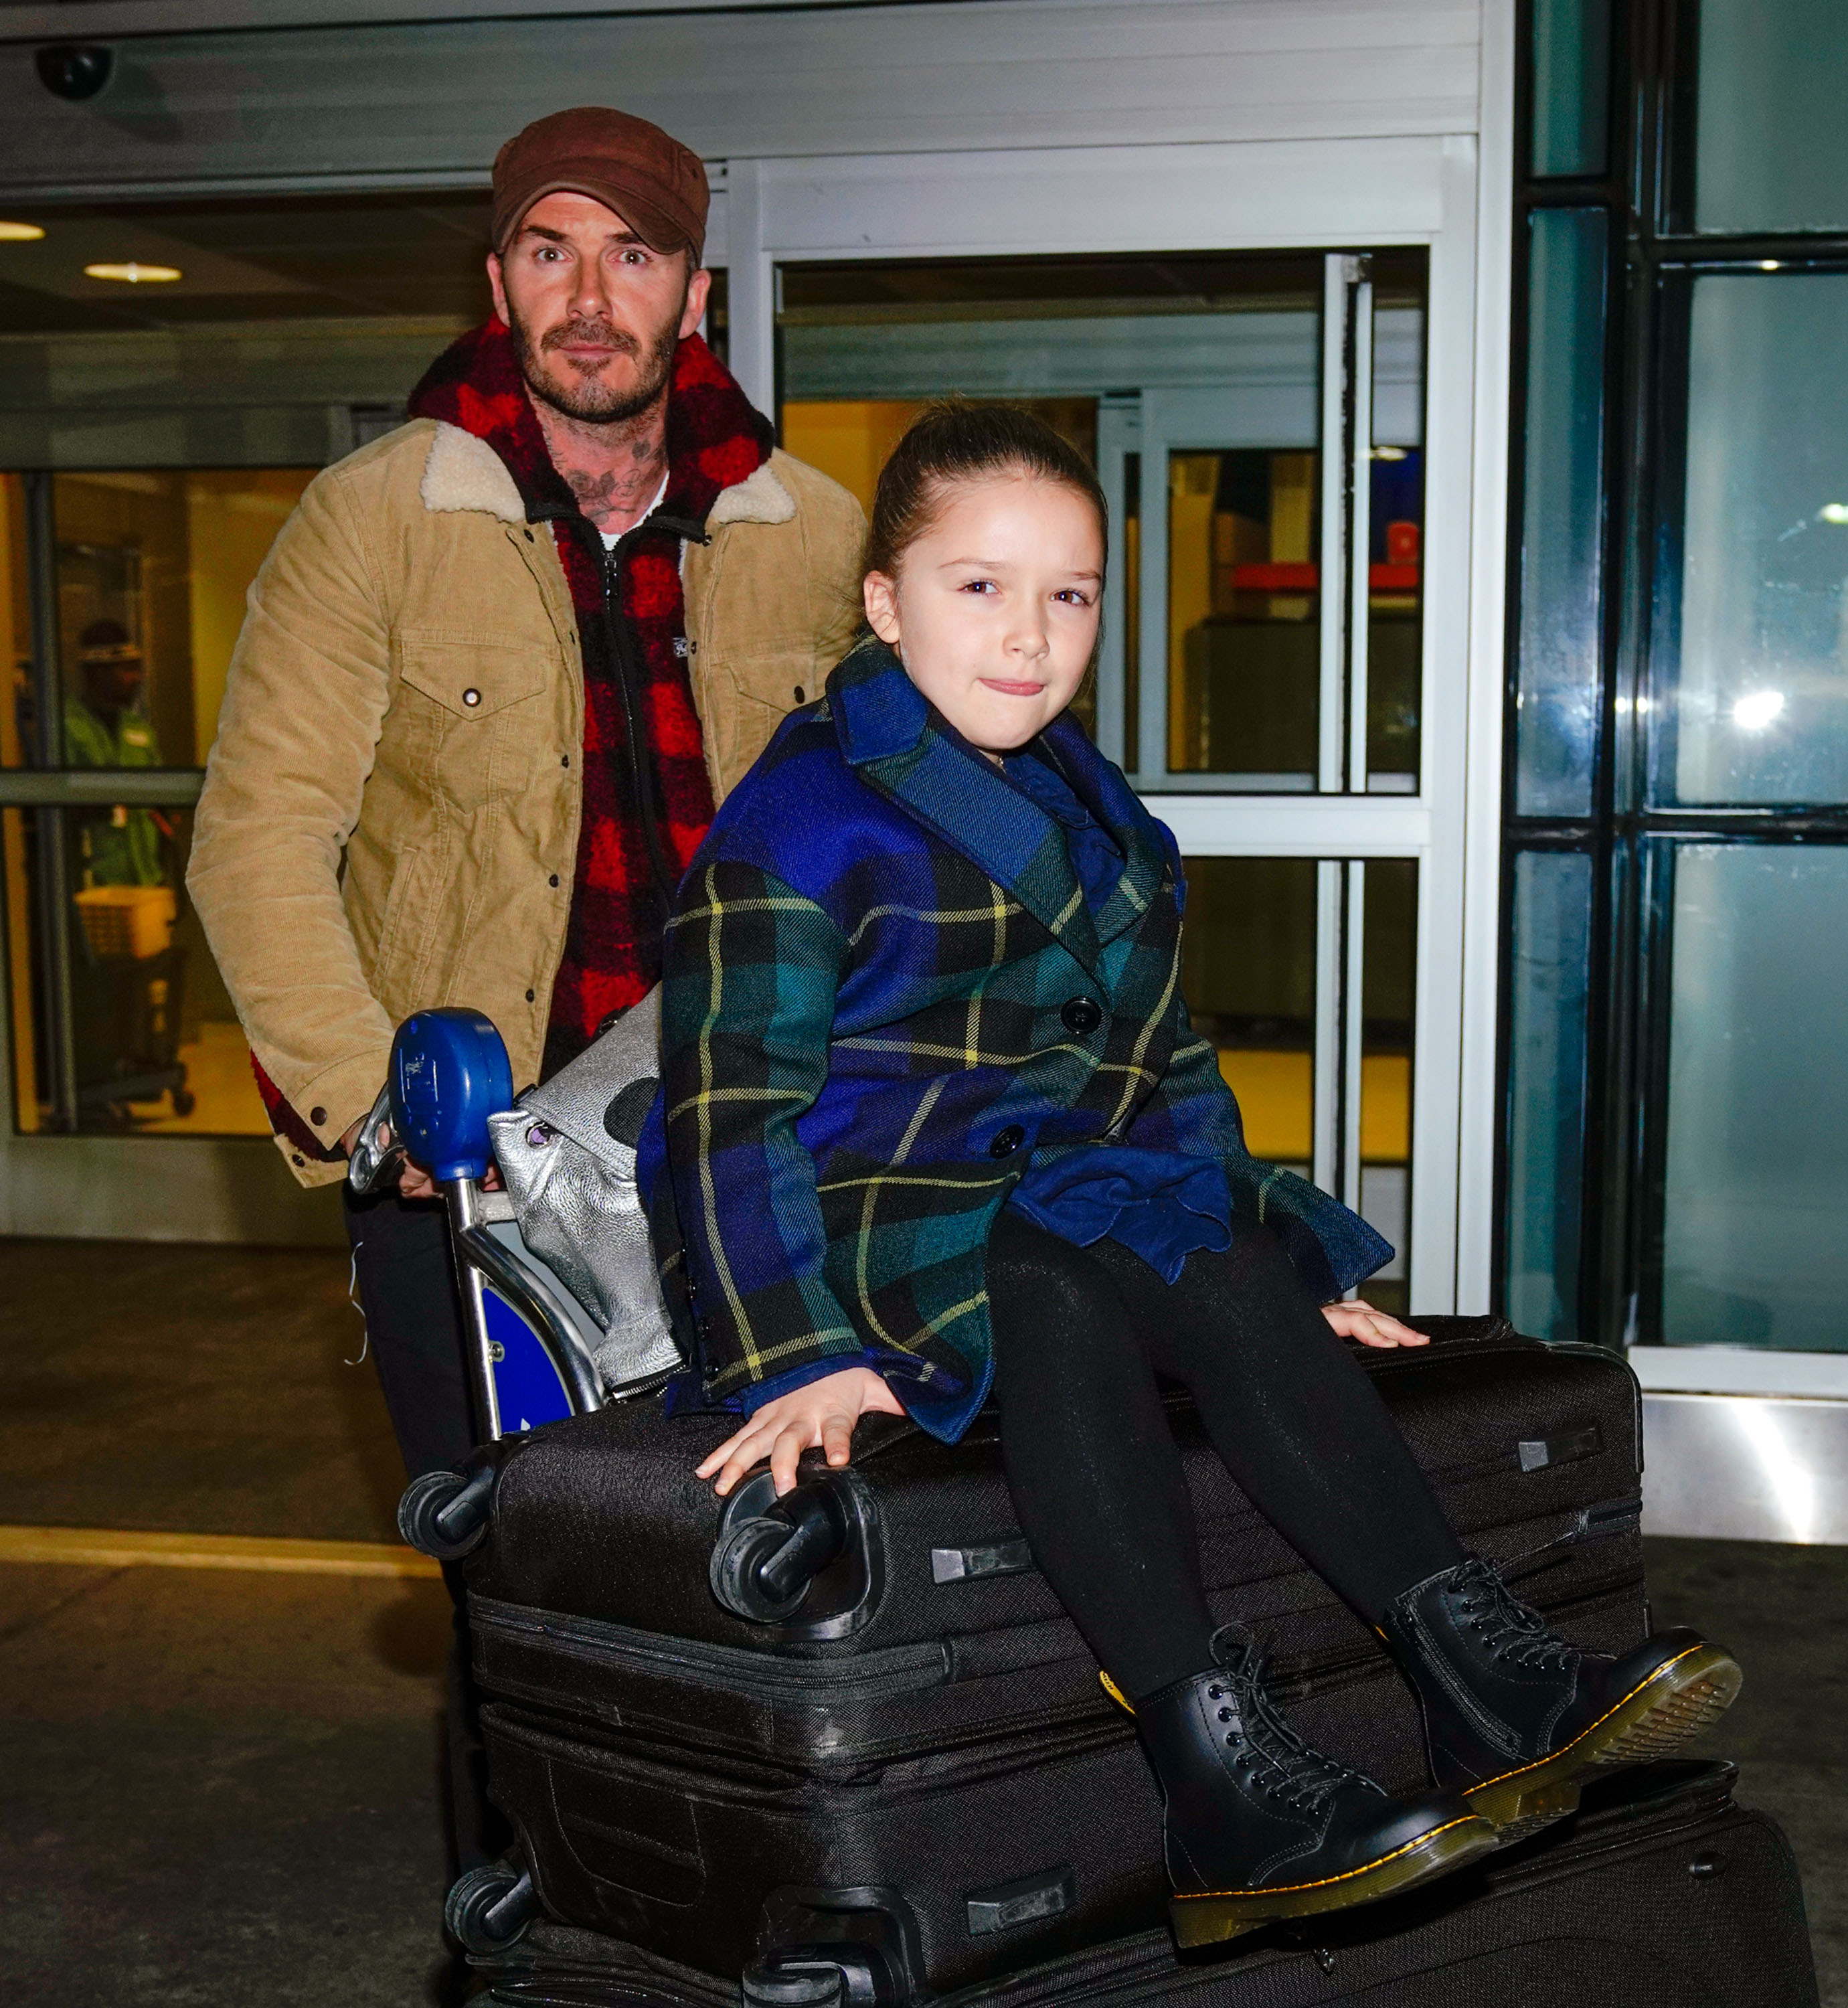 David Beckham pushes Harper on top of their luggage when arriving at JFK airport with sons Romeo and Cruz Beckham in New York <P> Pictured: David Beckham, Harper, Romeo and Cruz Beckham <B>Ref: SPL1657137  100218  </B><BR/> Picture by: Jackson Lee / Splash News<BR/> </P><P> <B>Splash News and Pictures</B><BR/> Los Angeles:310-821-2666<BR/> New York:212-619-2666<BR/> London:870-934-2666<BR/> <span id=